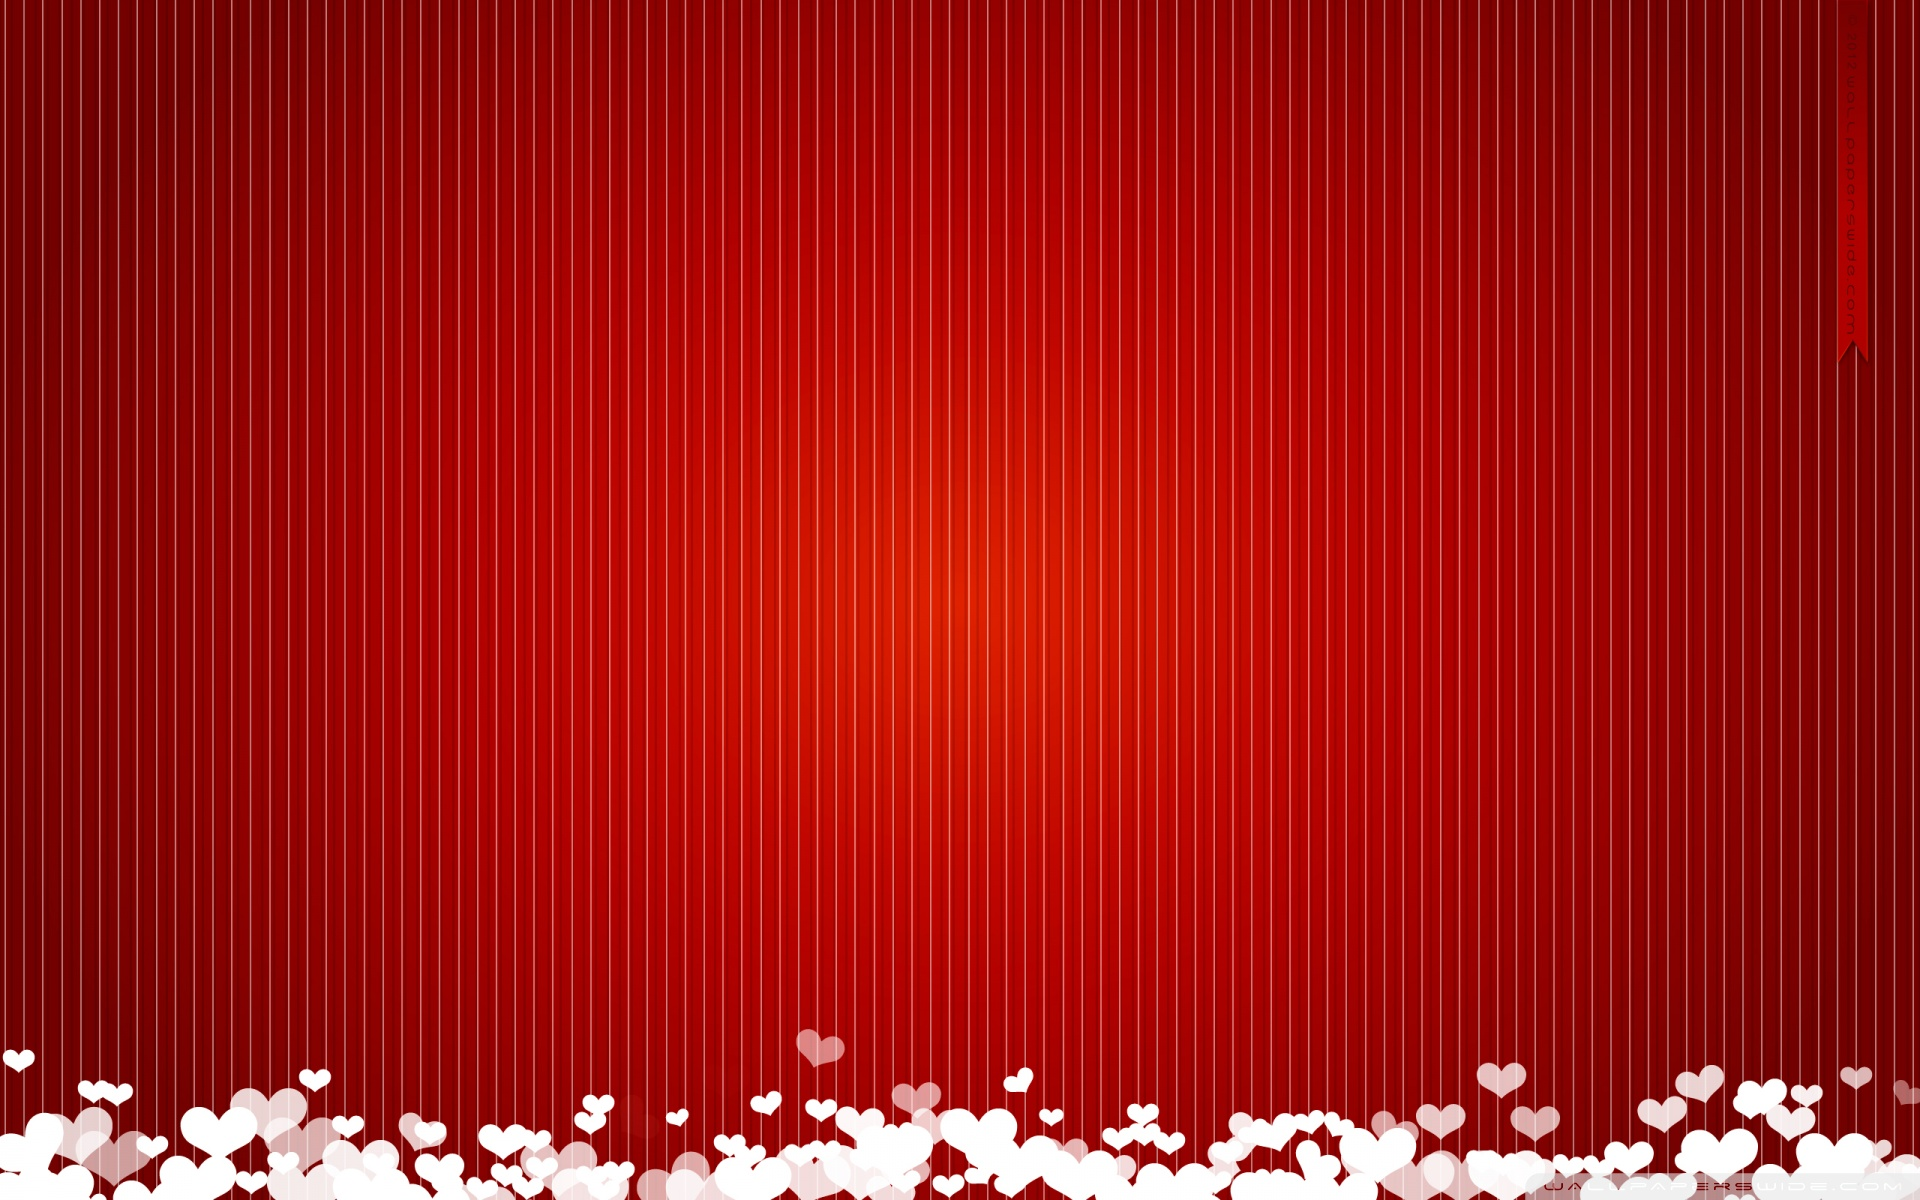 Red Wallpaper Images 1920x1200